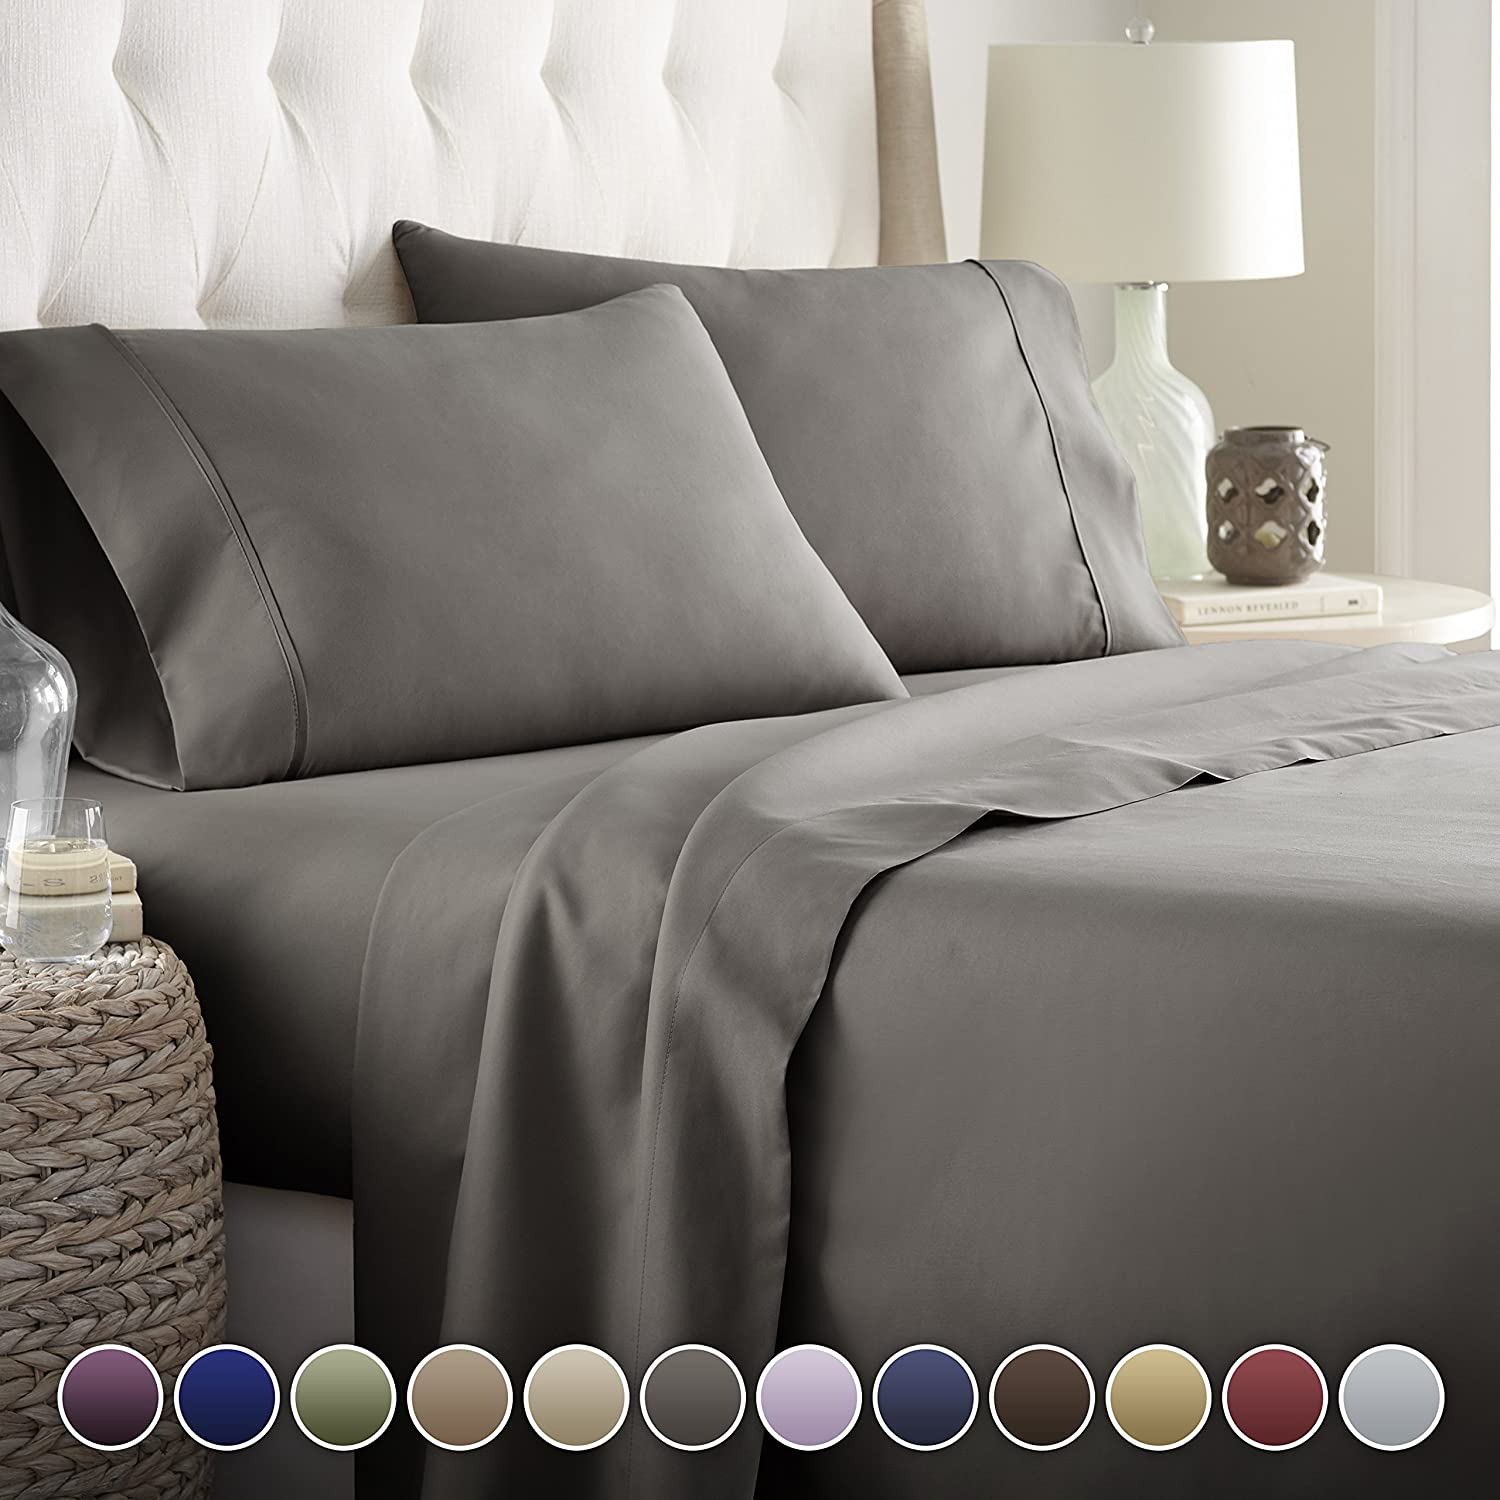 Hotel Luxury Bed Sheets Set- 1800 Series Platinum Collection-Deep Pocket,Wrinkle & Fade Resistant